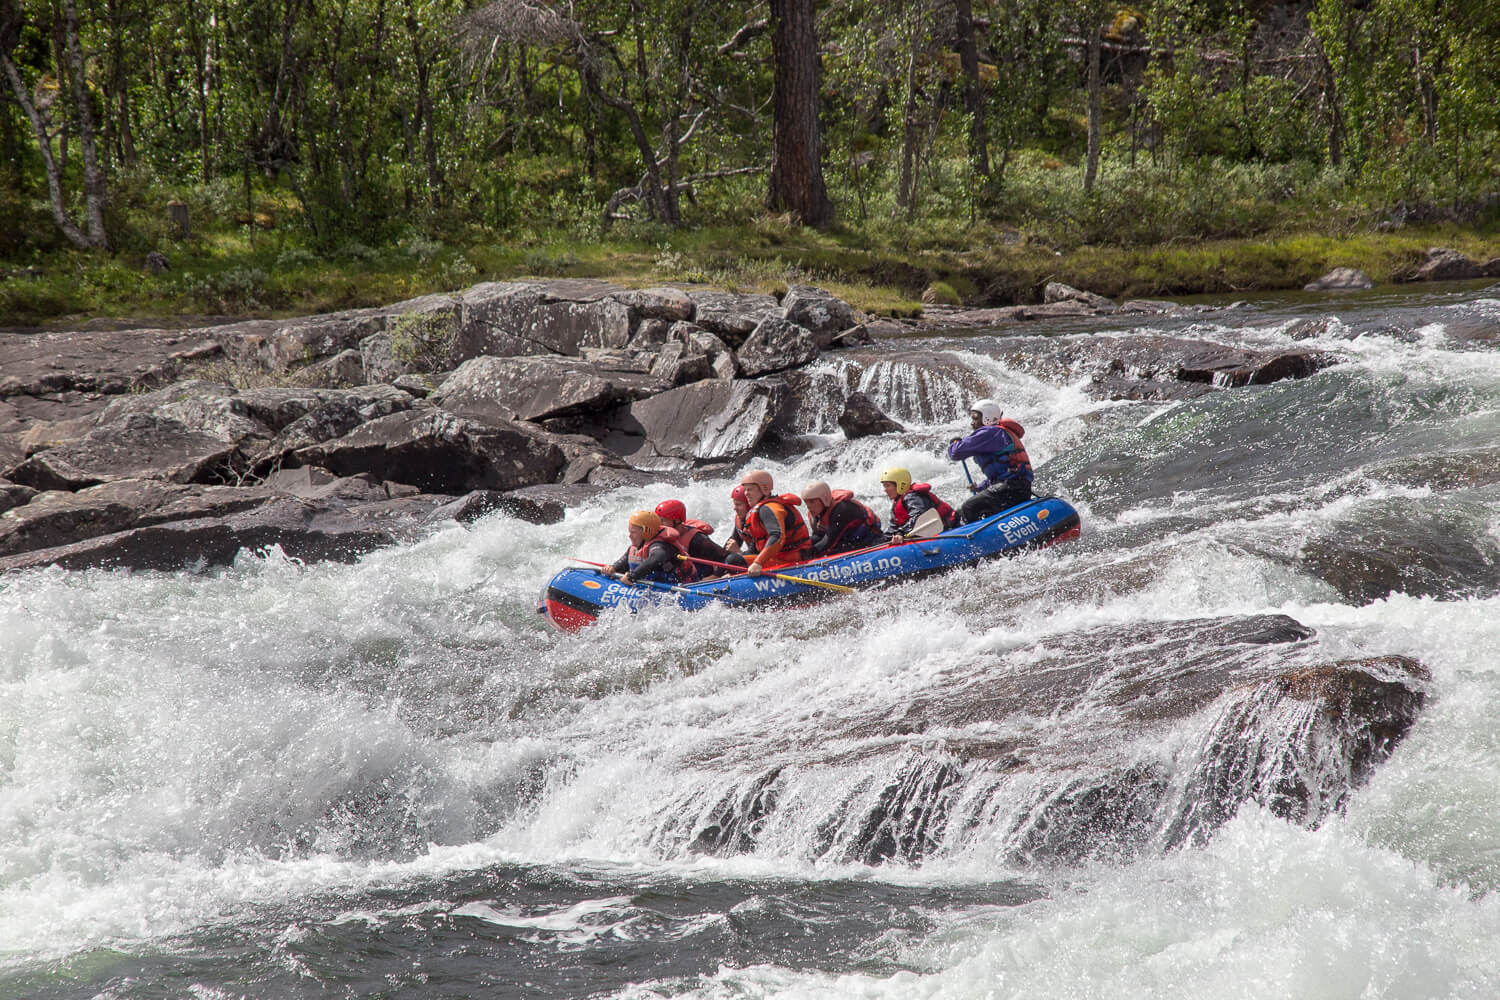 rafting-serious-fun-dagali-365-whitewater-summer-hallingdal-geilo-norway (40)